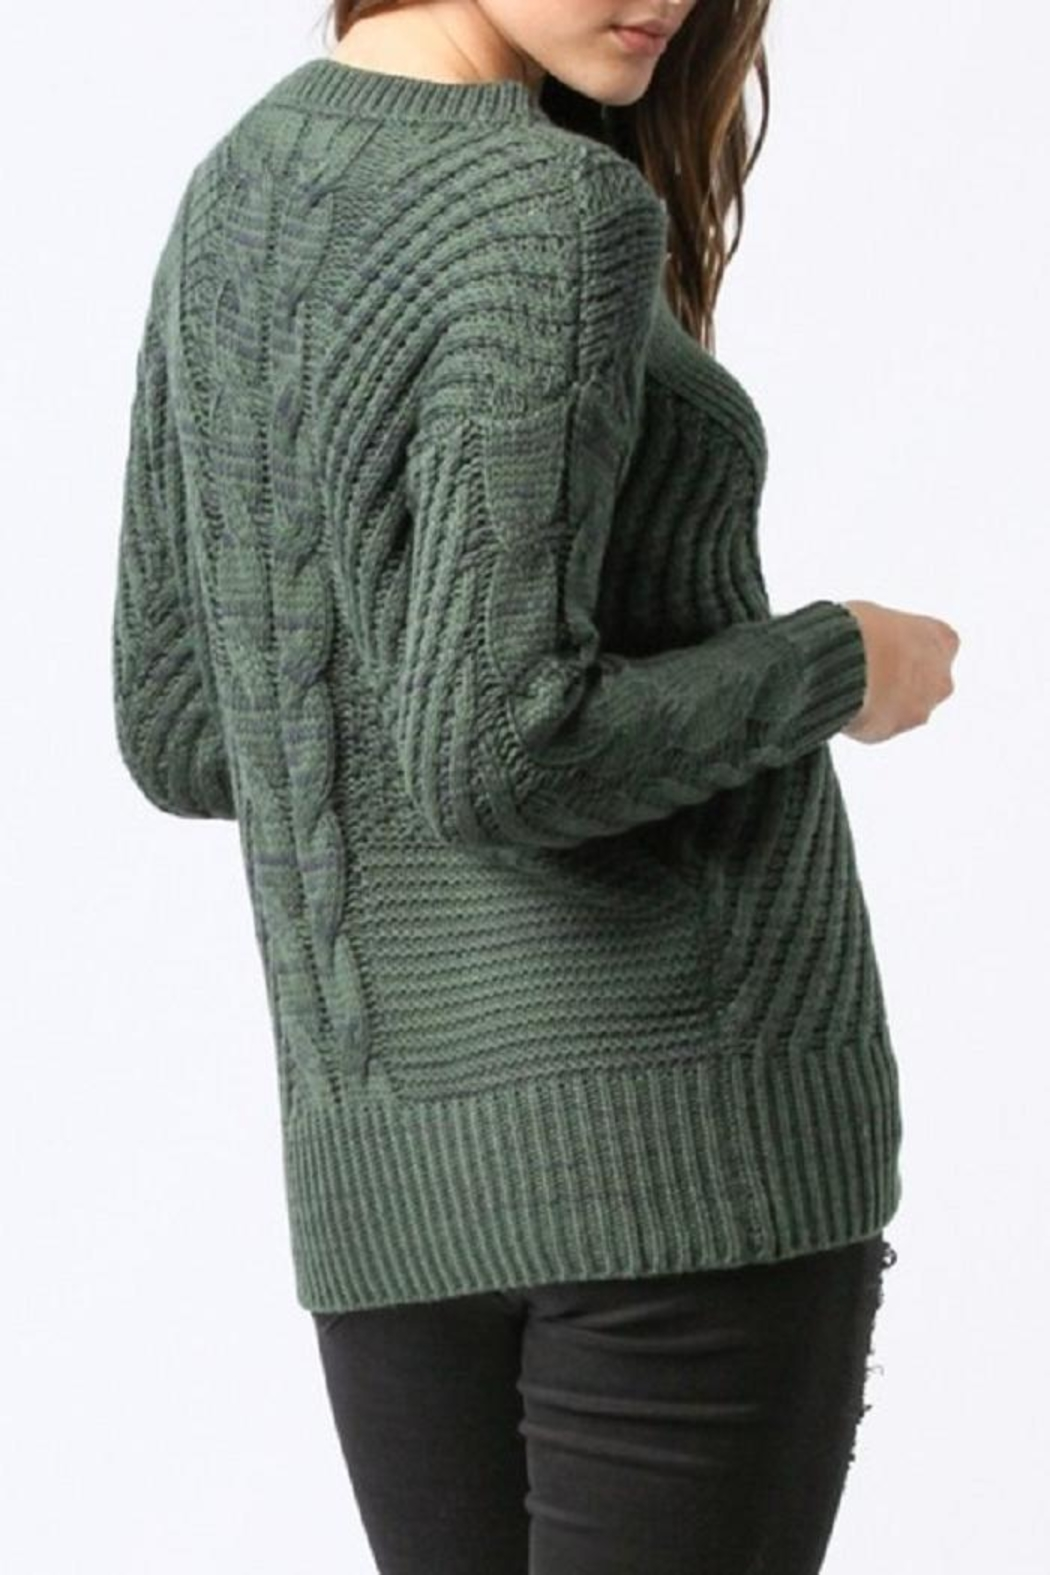 Main Strip Lace Up Sweater - Front Full Image